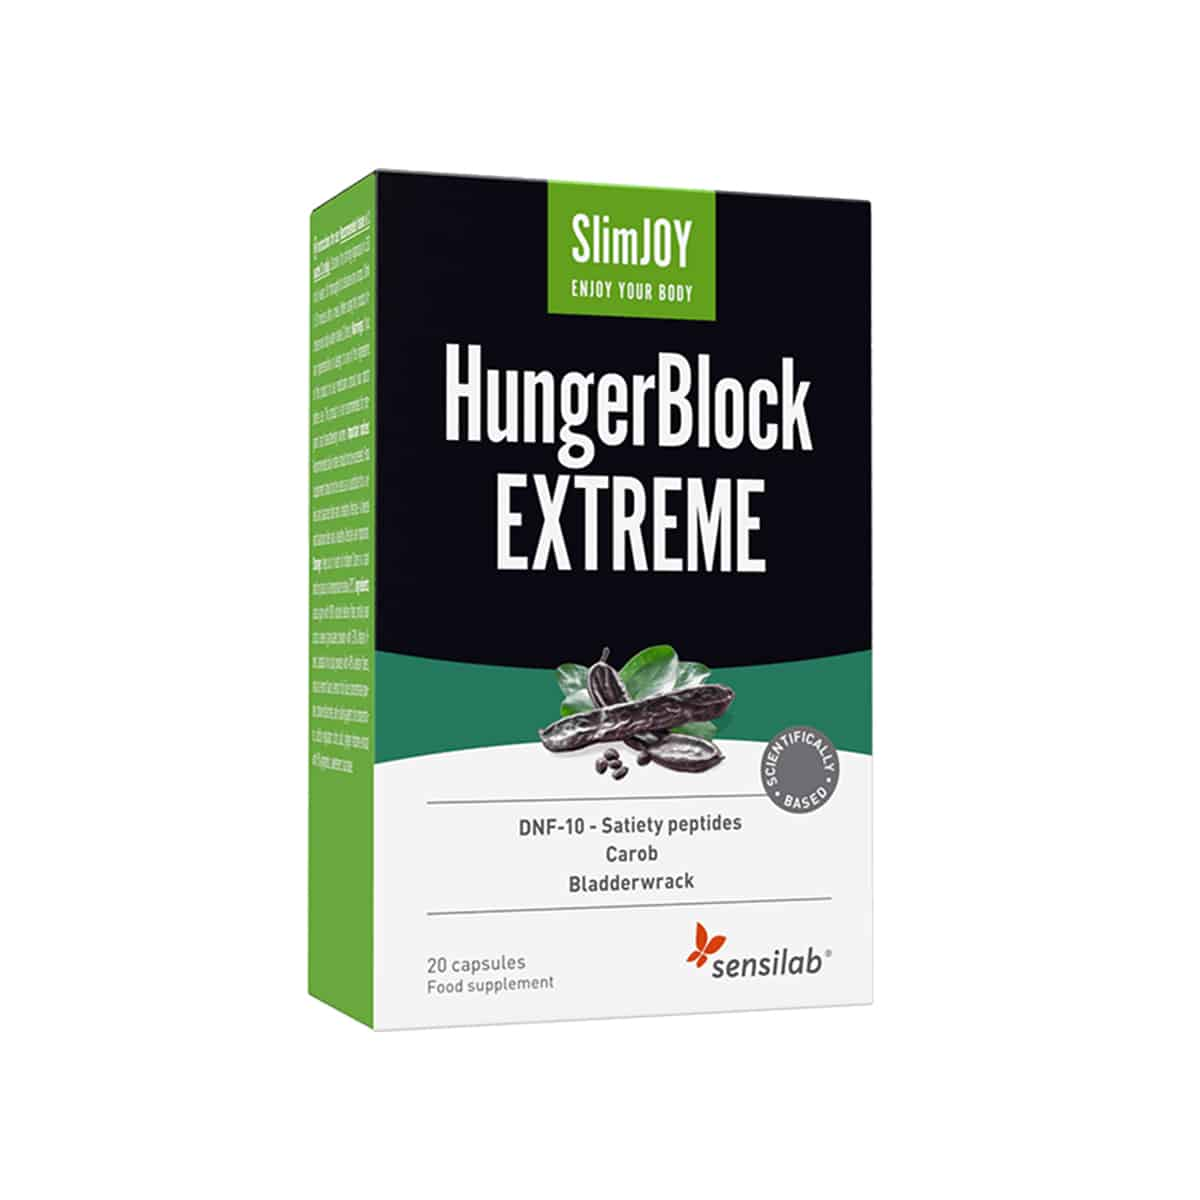 SlimJOY HungerBlock EXTREME Ireland Appetite Calorie